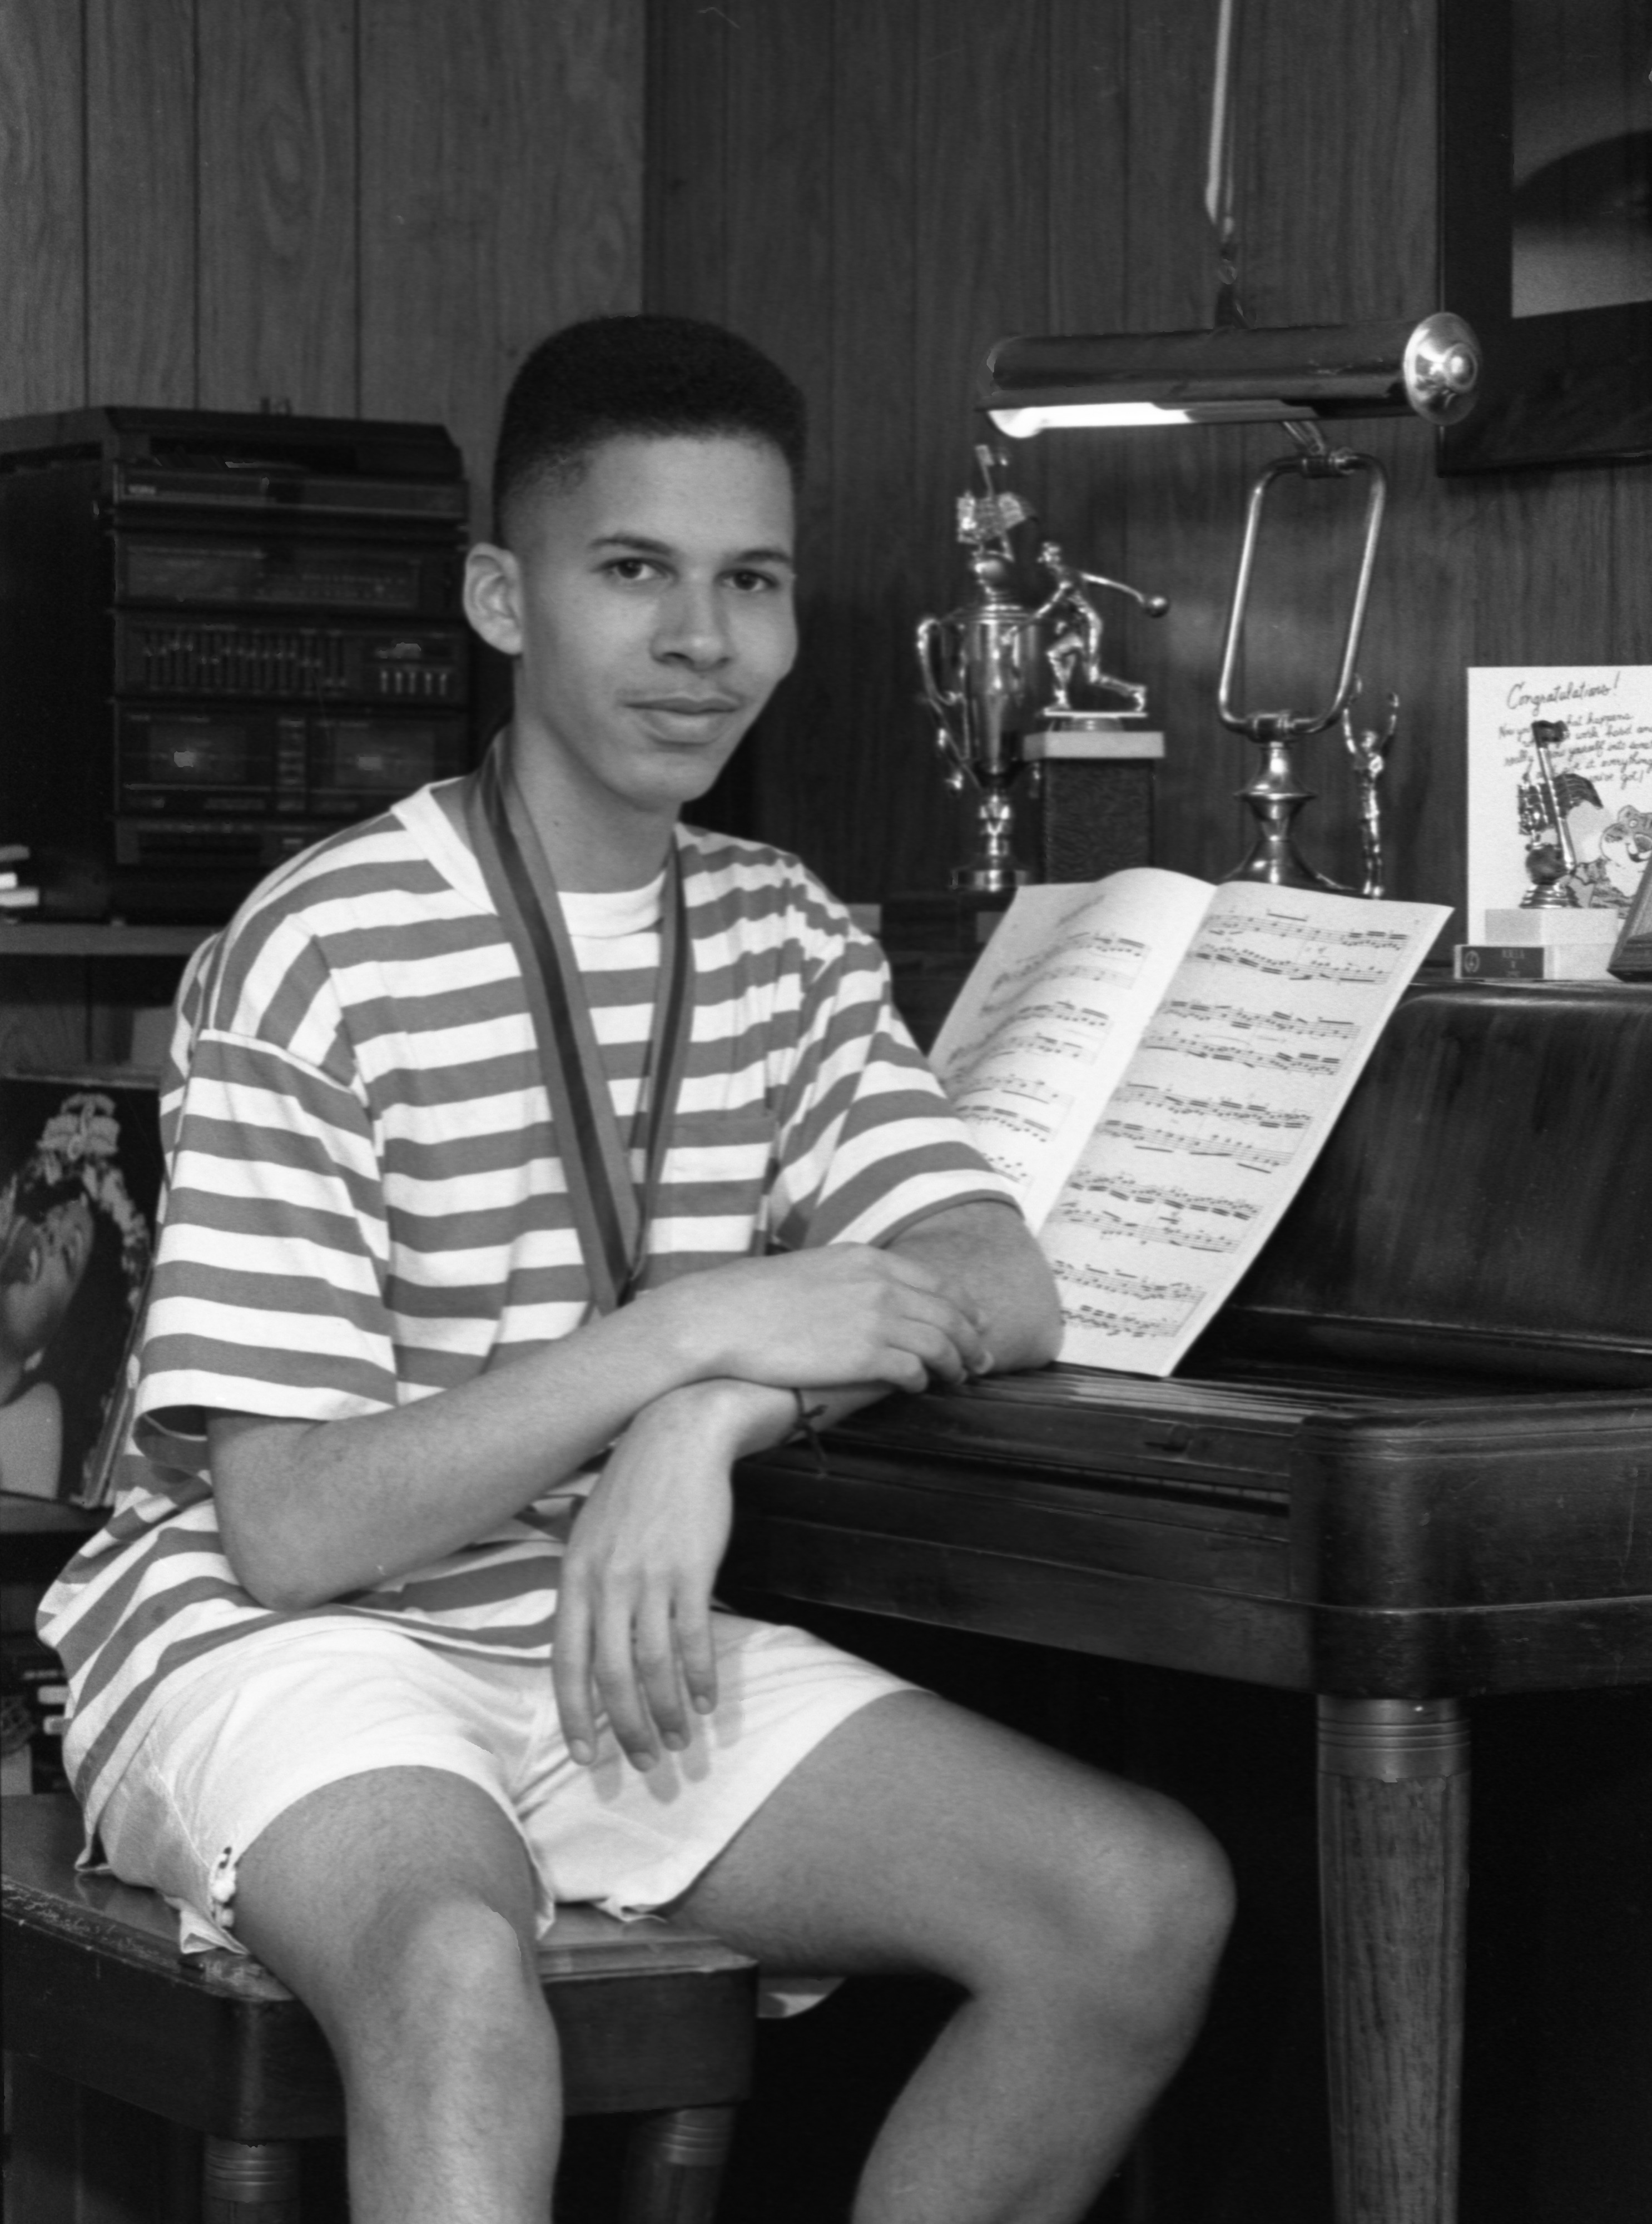 Andre Myers, Greenhills Student & Award Winning Composer, July 28, 1990 image